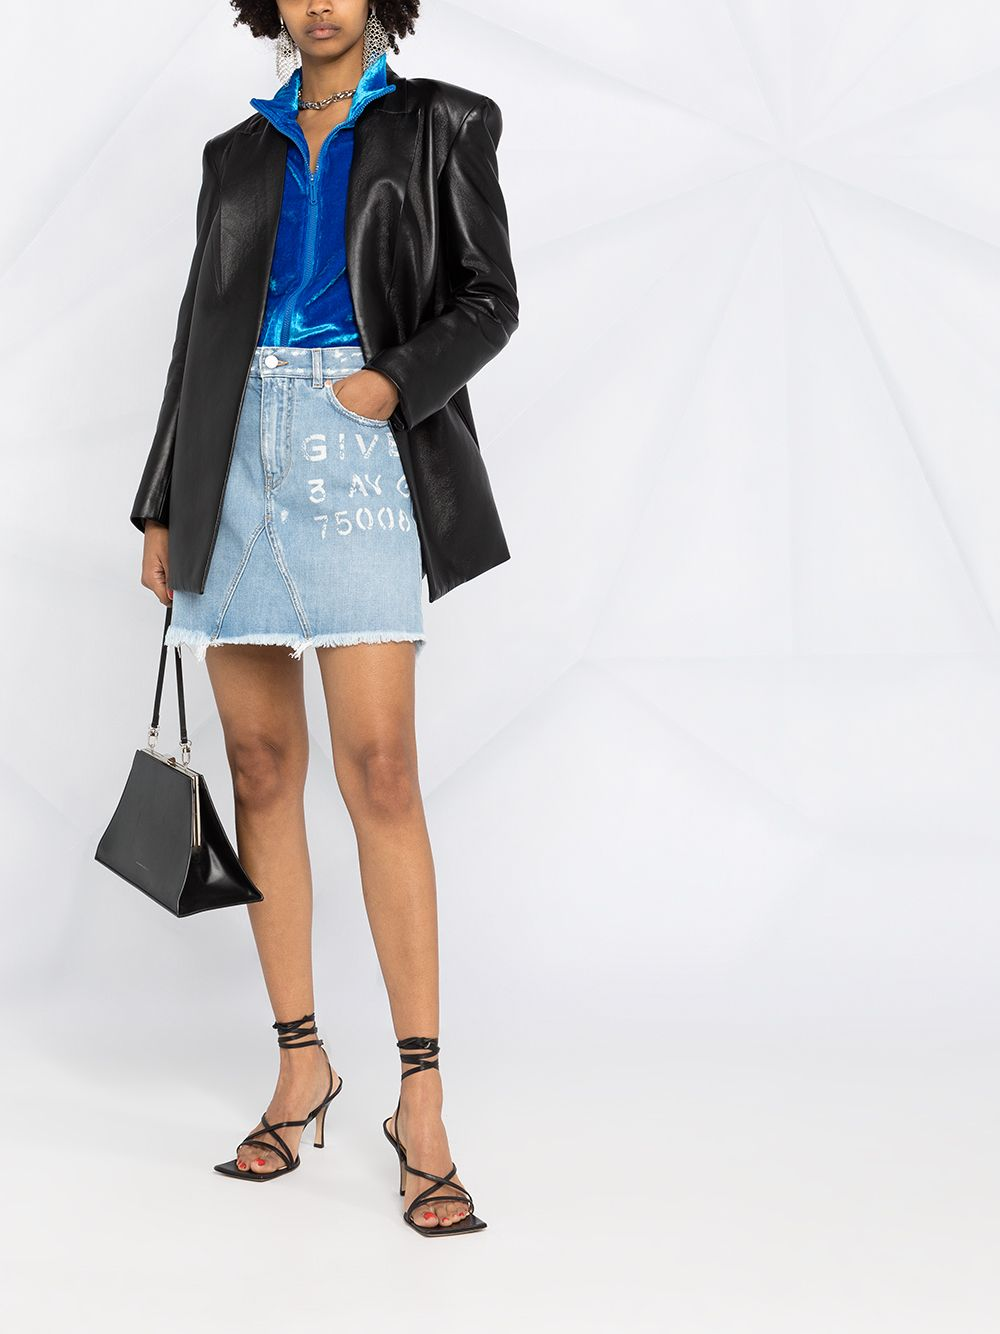 Light blue denim skirt featuring Givenchy logo print  GIVENCHY |  | BW40GL50D1452